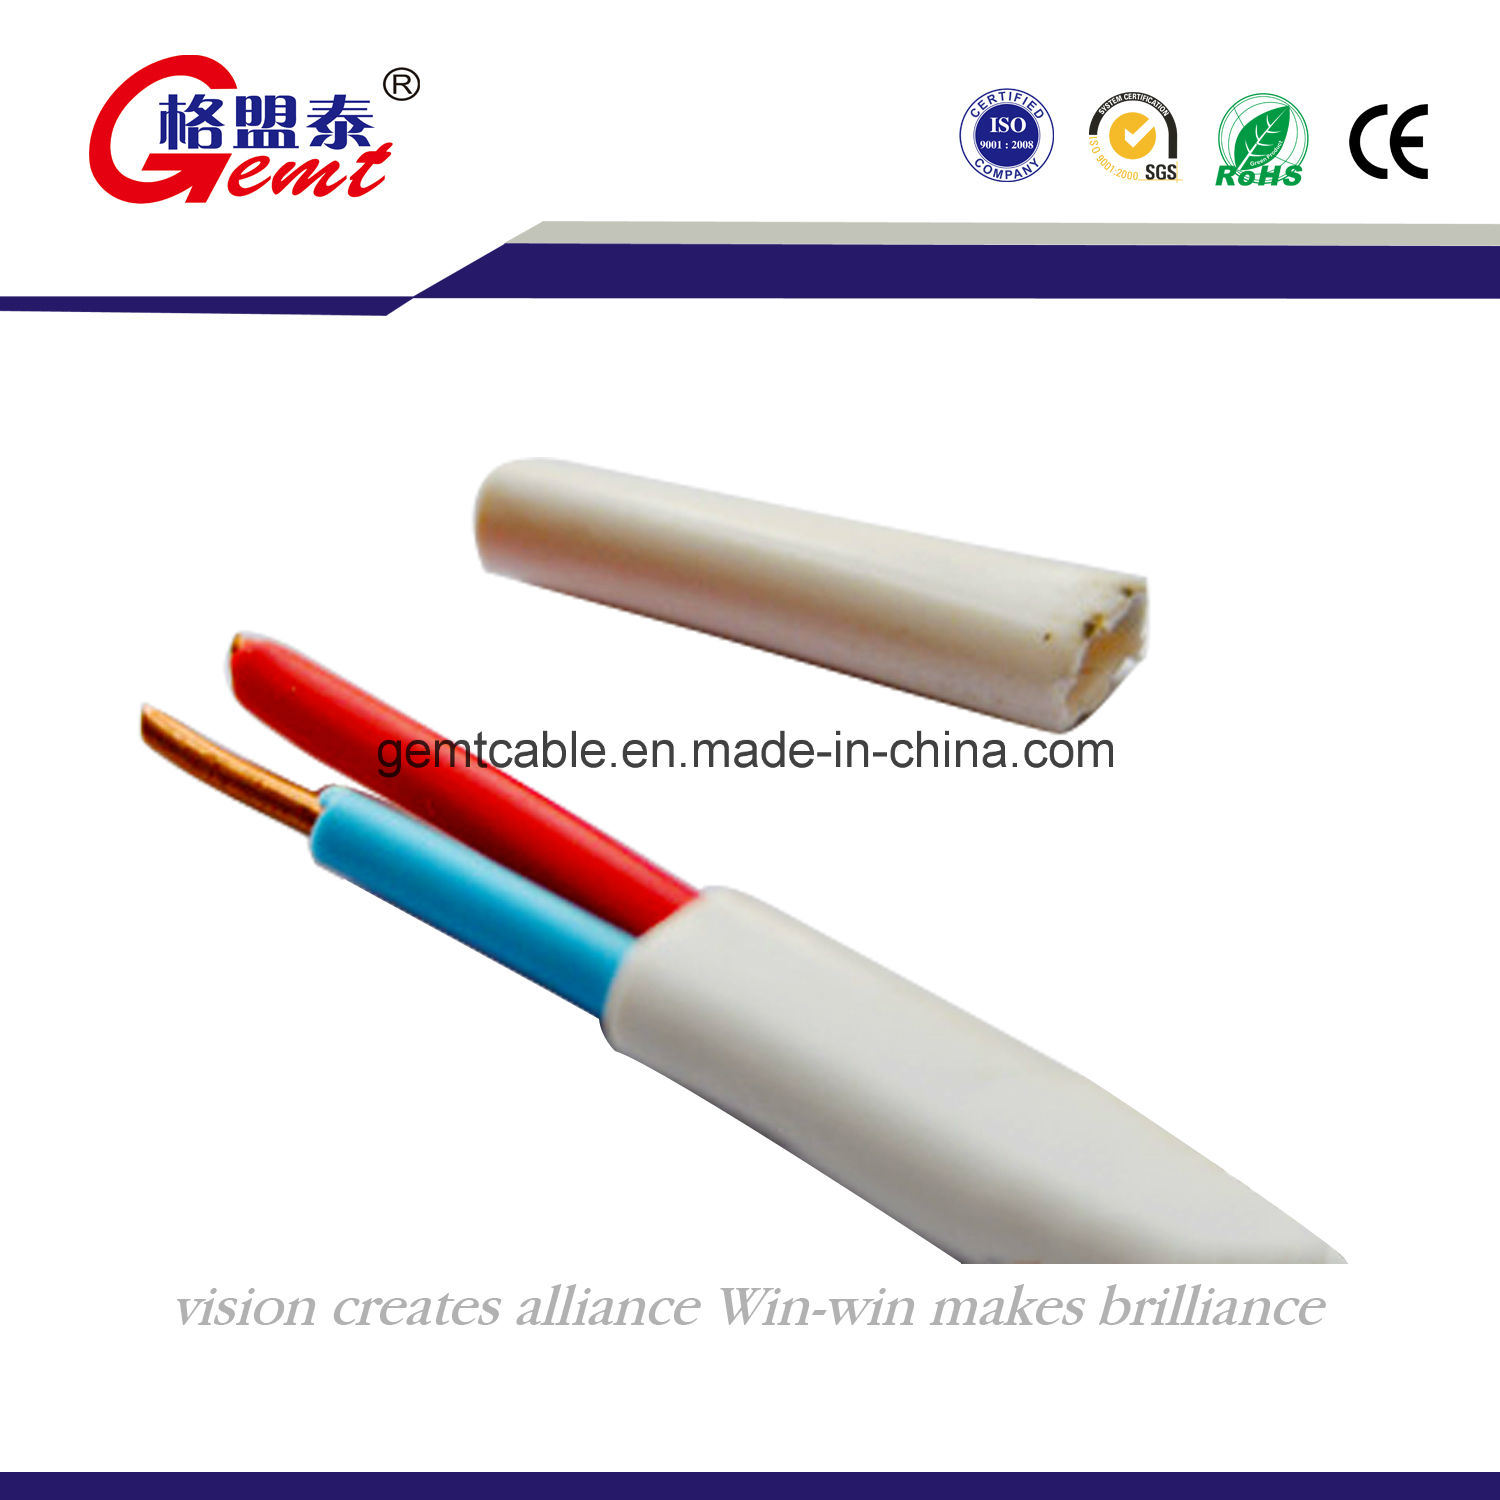 china spt copper stranded flat cable china electrical cable cca cable rh gemtcable en made in china com